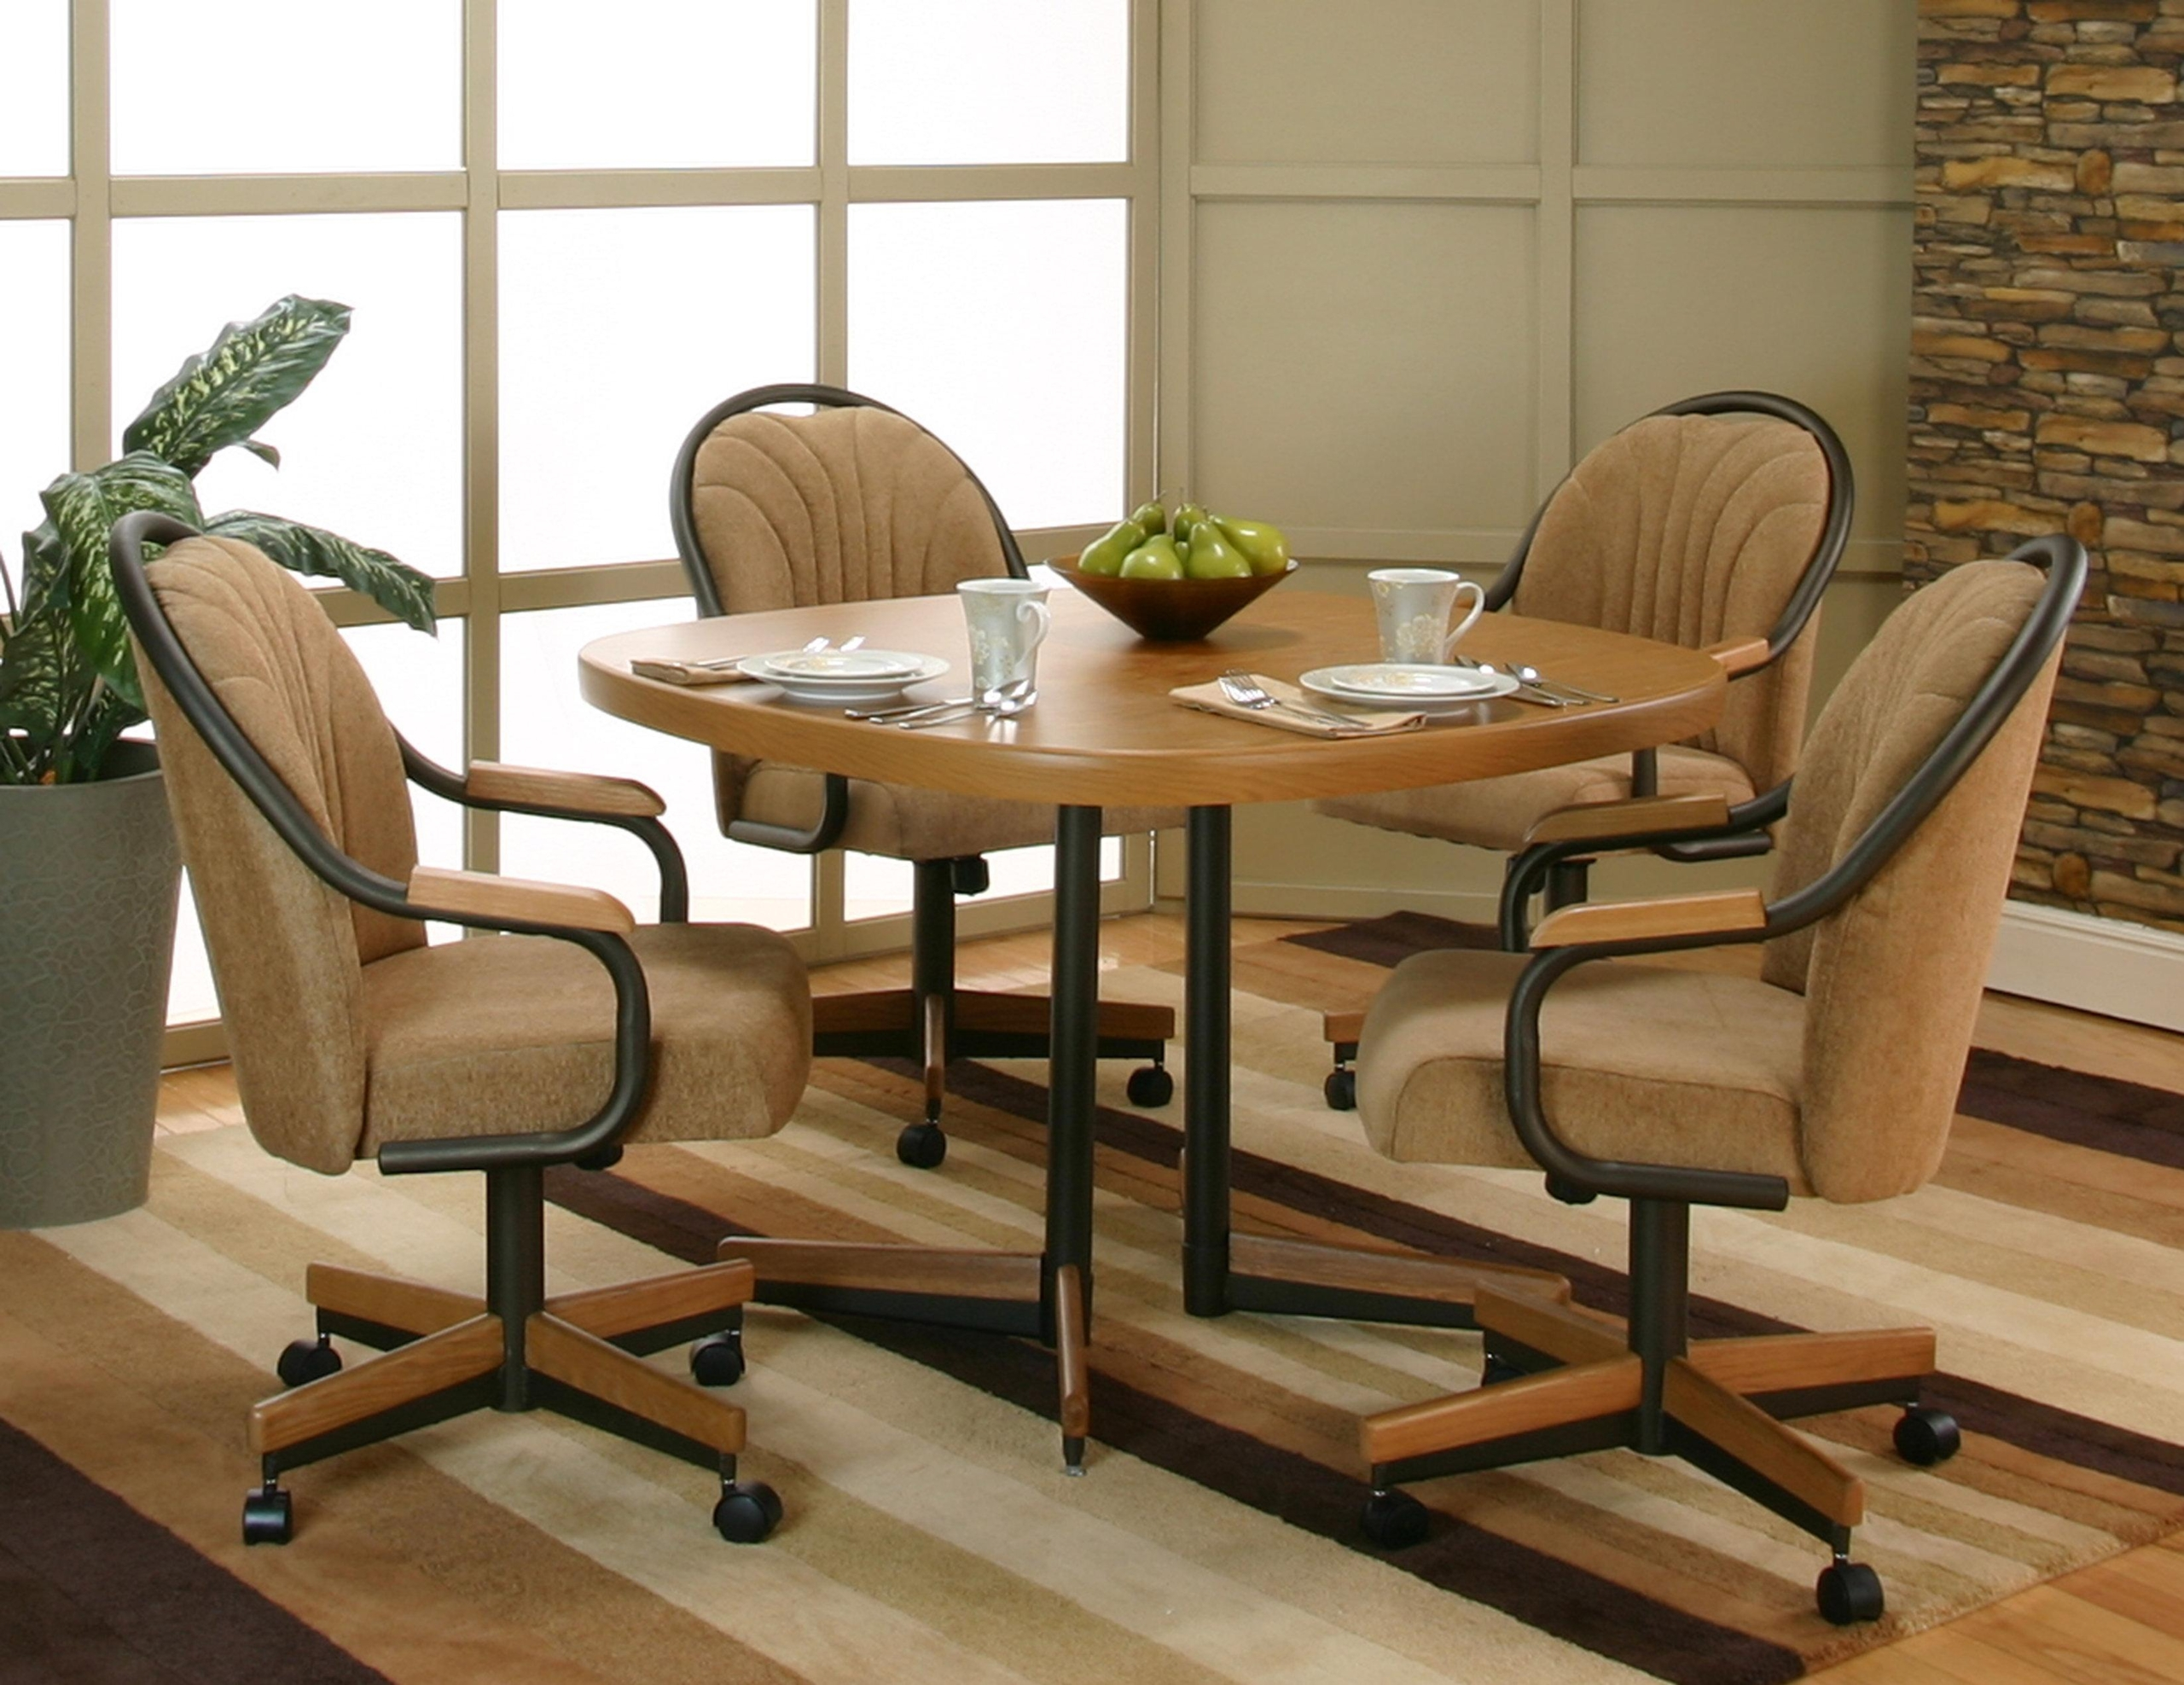 Set Of 4 Kitchen Chairs With Casters, Padded Dining Room Chairs With Casters